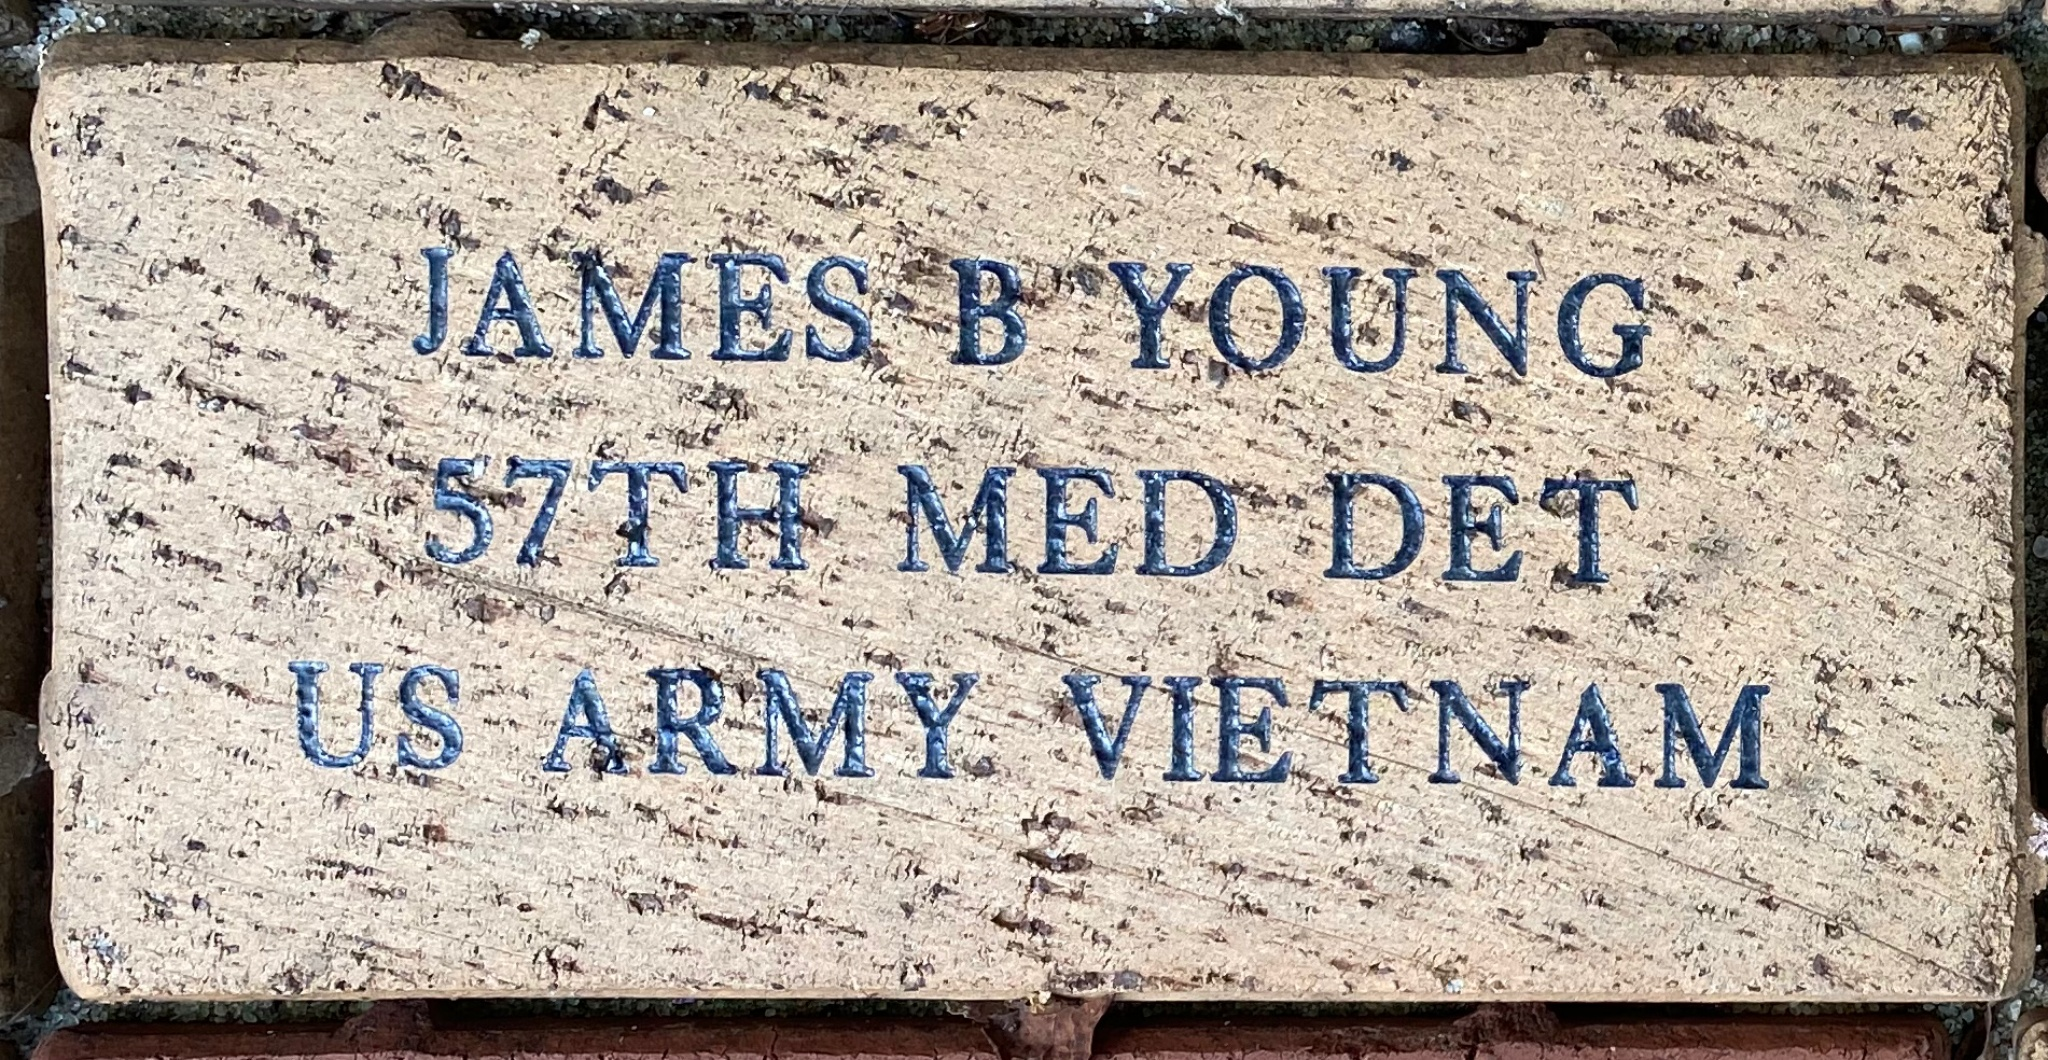 JAMES B YOUNG 57TH MED DET US ARMY VIETNAM